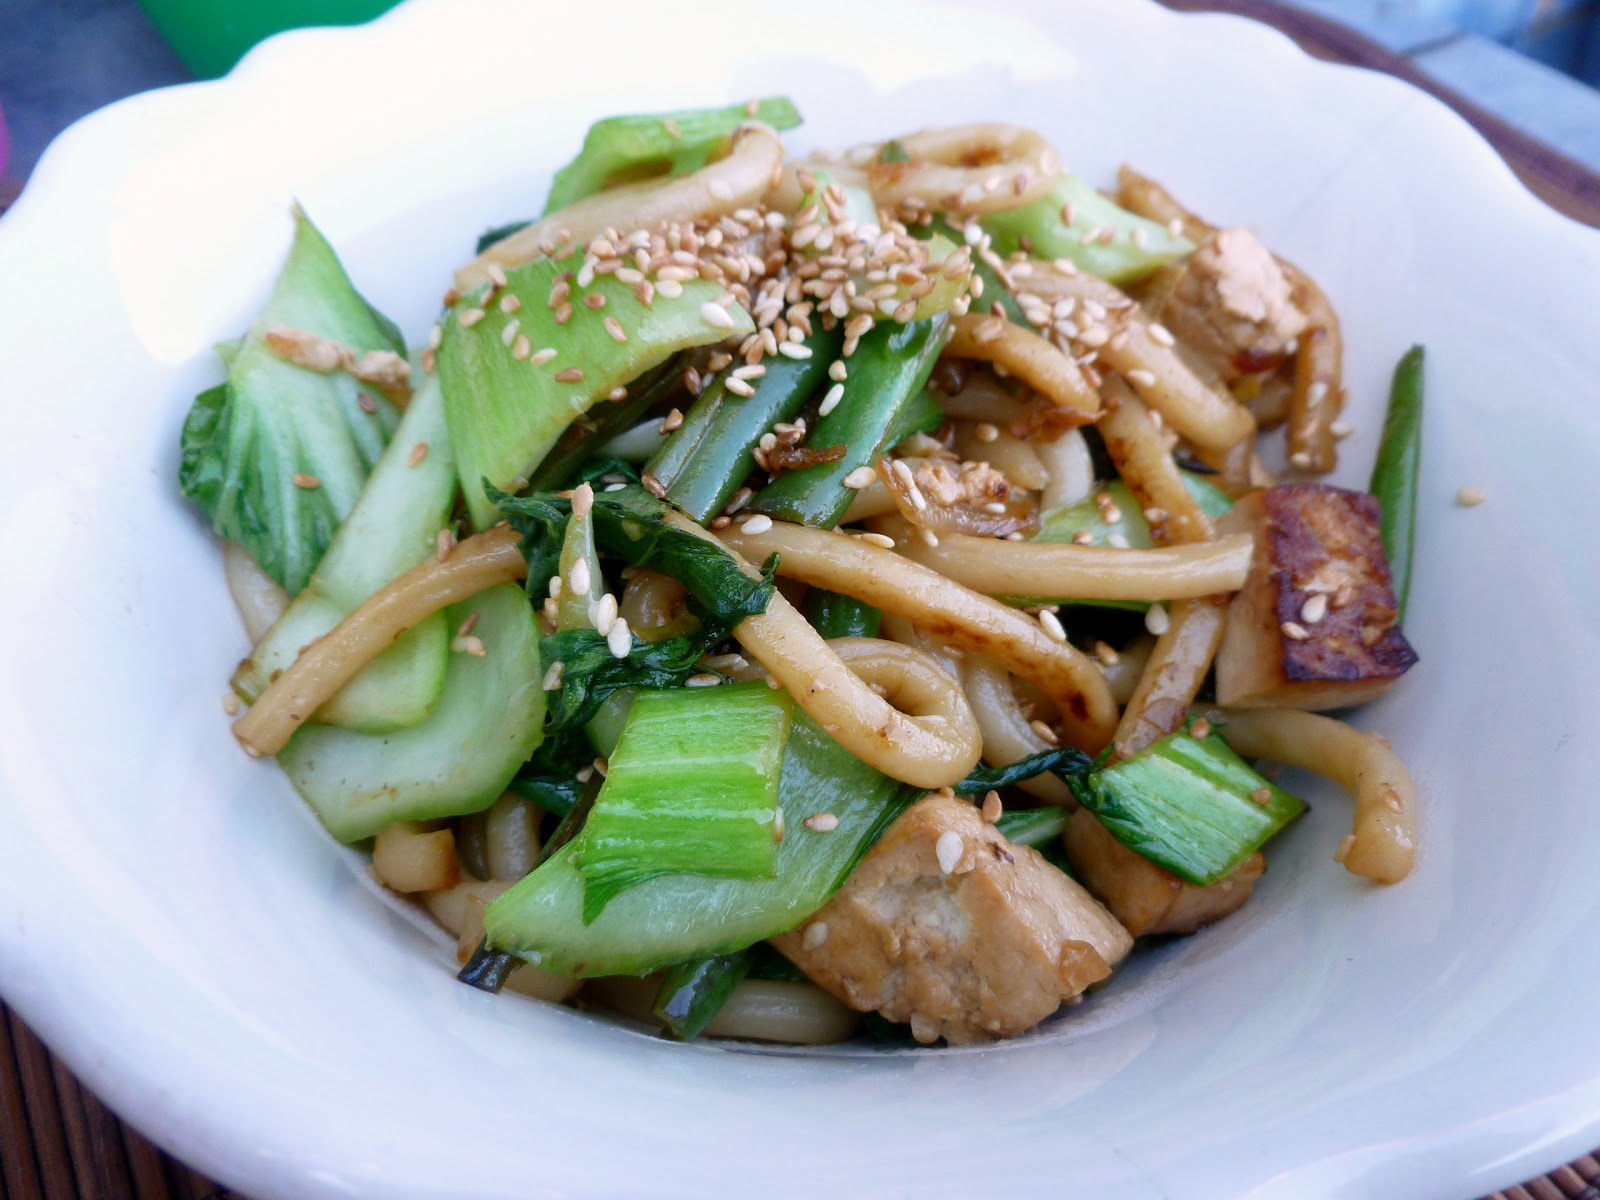 Kirsten's Kitchen: of vegan creations: Simple Udon Noodles